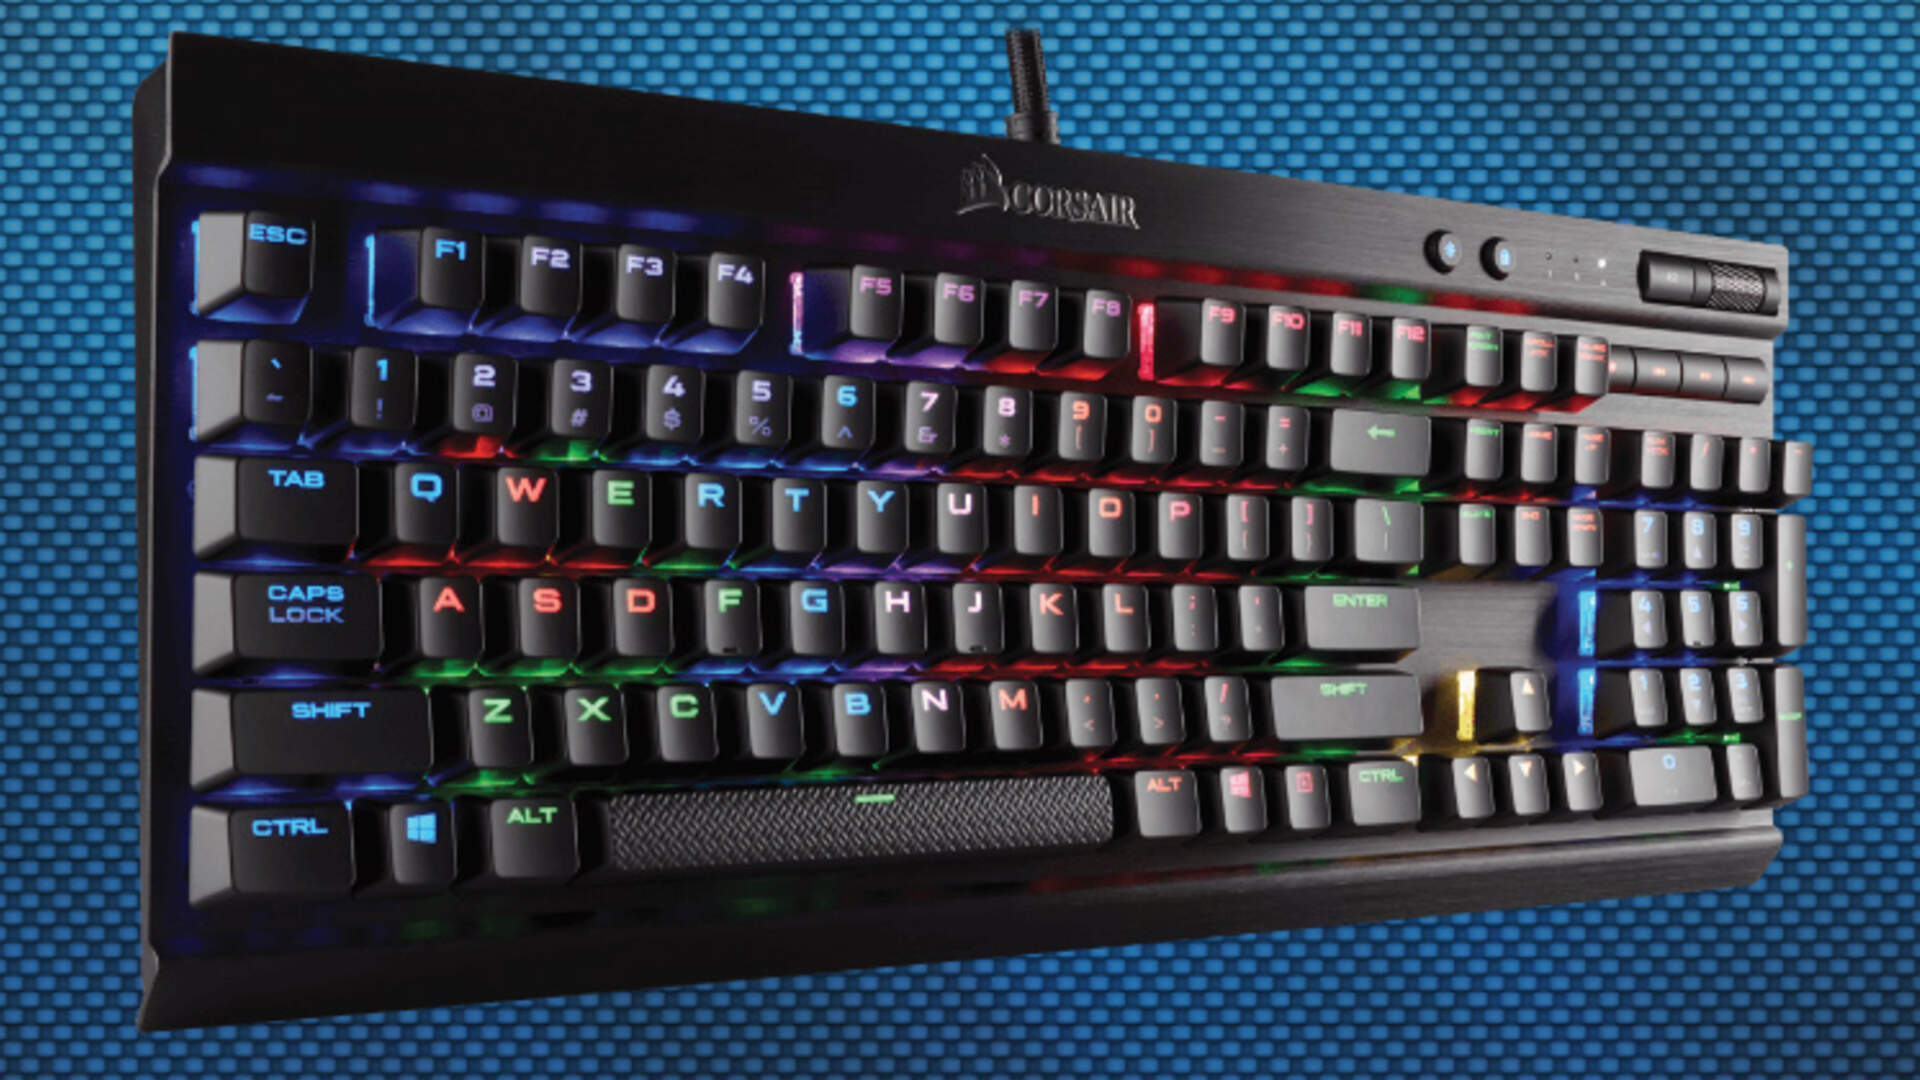 Corsair K70 RGB Rapidfire Review: Pro-level Speed and Lighting in a Single Package